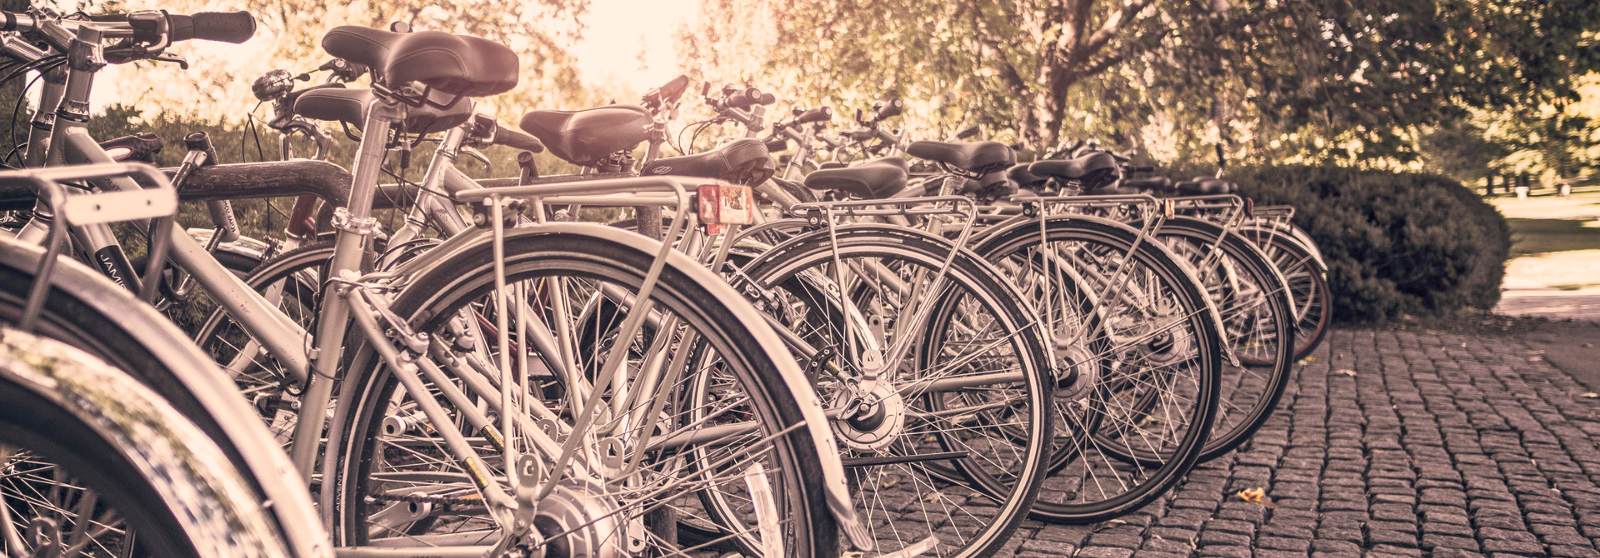 Bicycles don't work—neither do Agile, Design Thinking, Scrum, and all things